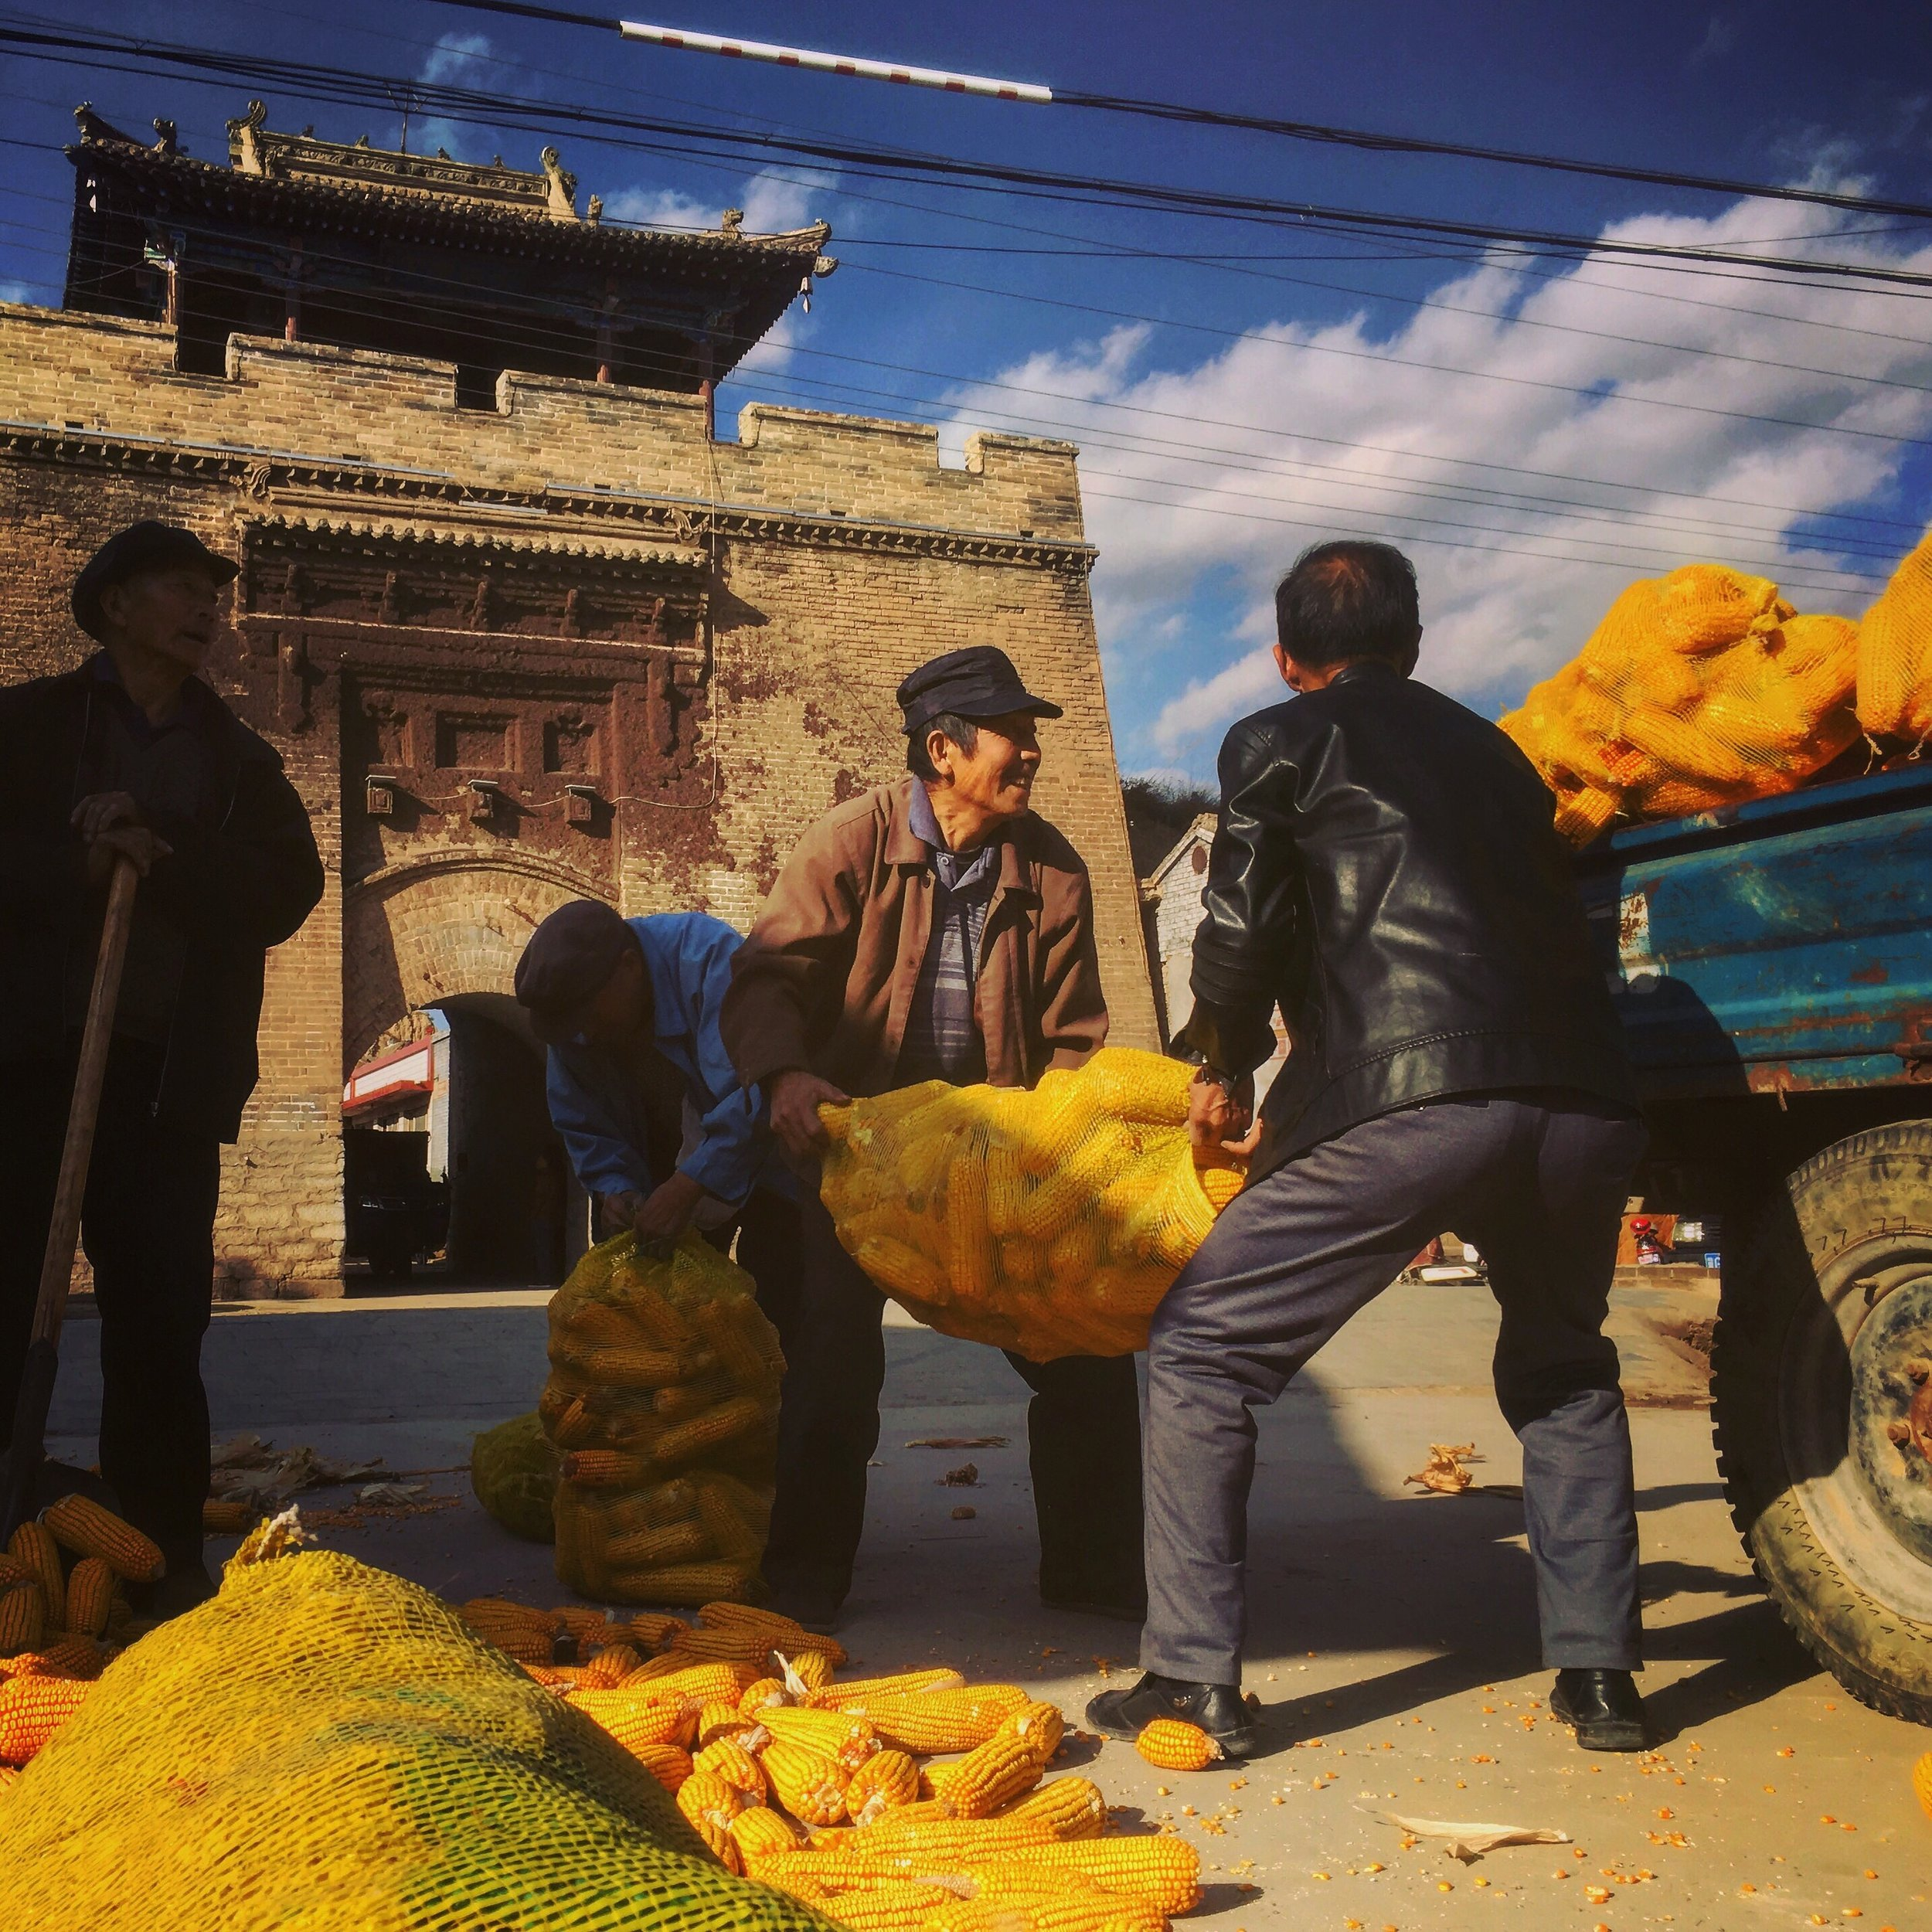 Farmers wrap up the corn harvest in a village in Shanxi Province.